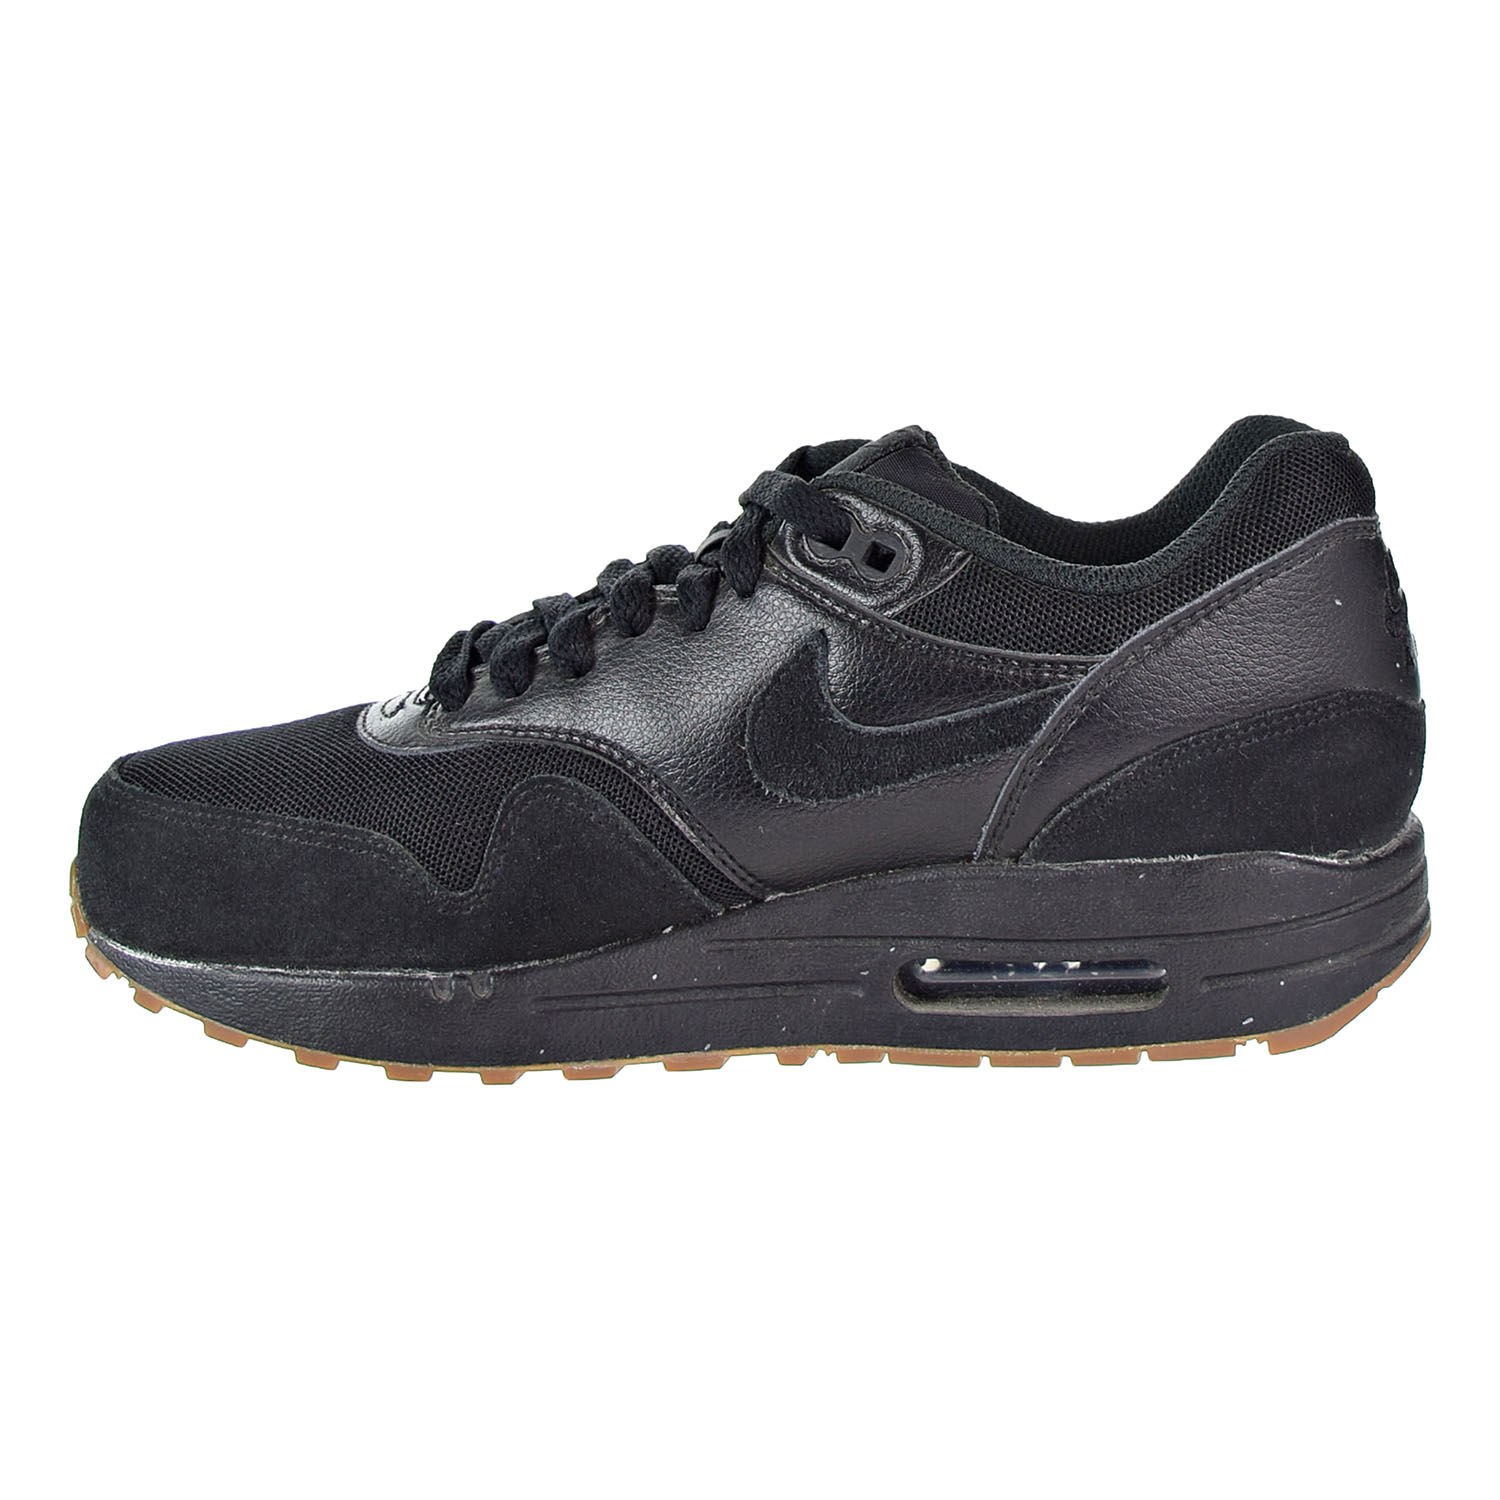 Details about Nike Air Max 1 Essential Women's scarpa BlackBlack 599820 020